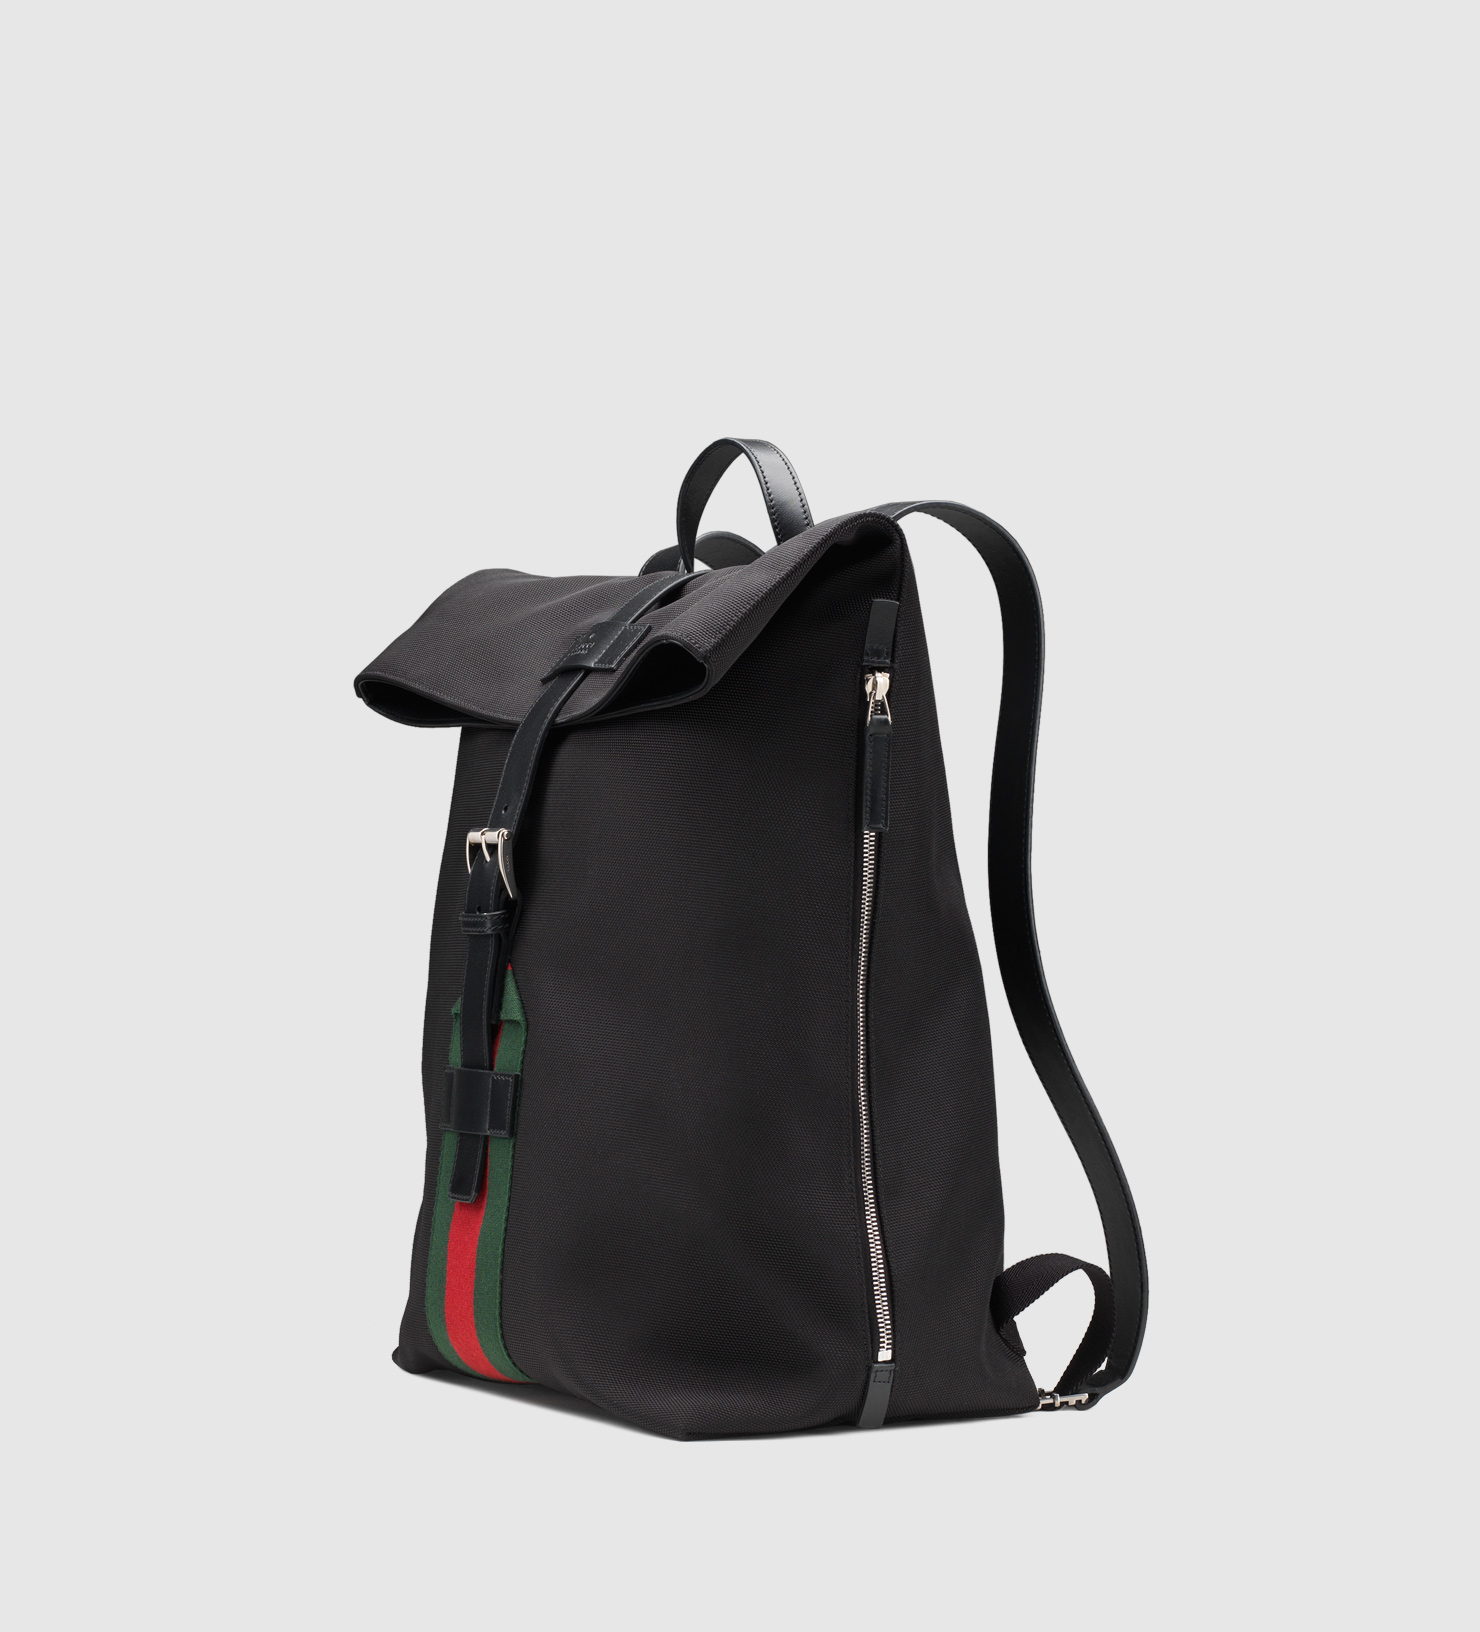 ff06baa323f Lyst - Gucci Black Techno Canvas Backpack in Black for Men